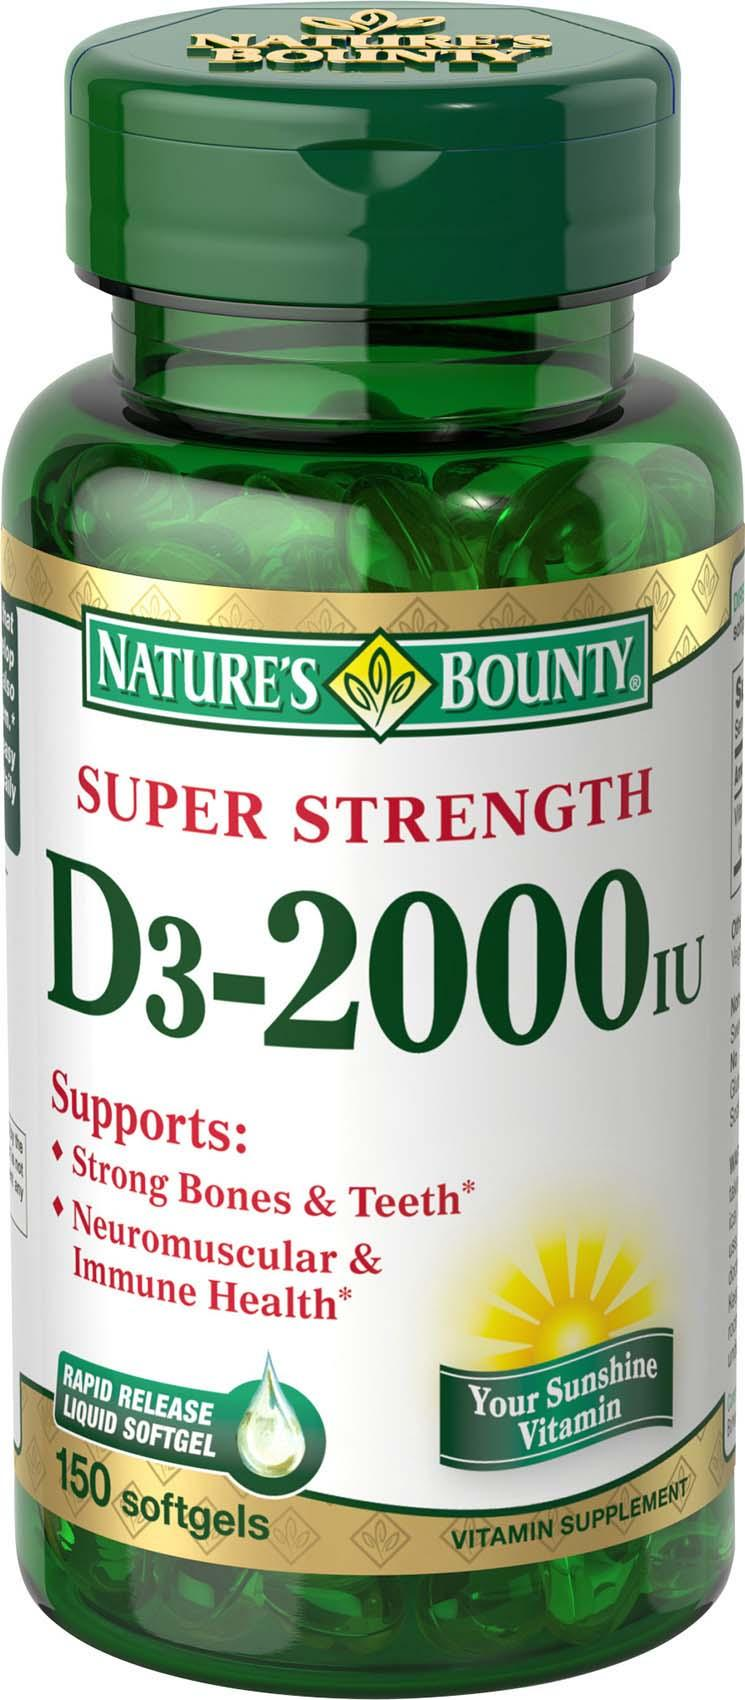 softgels bounty vitamin liquid nature d3 natures 2000 iu rapid release ingredients health amazon care personal quickly allow enter designed